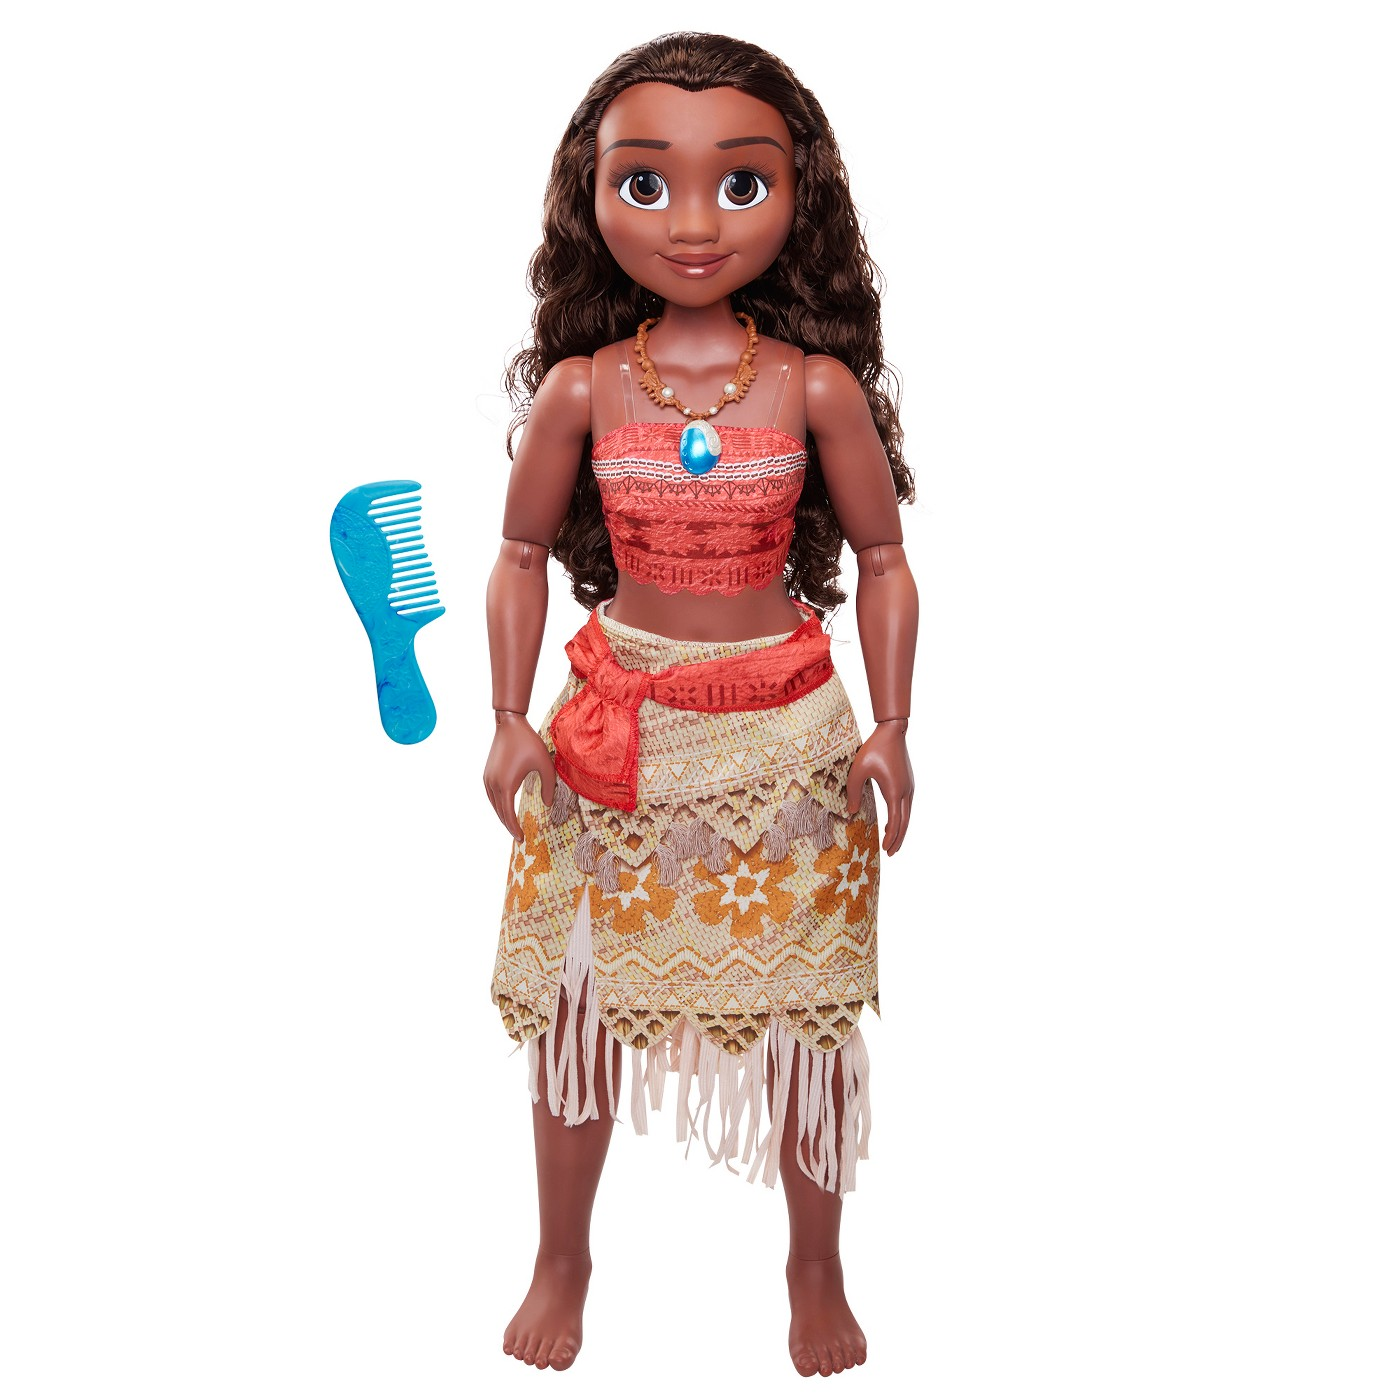 "Disney 32"" My Size Moana Princess Doll"